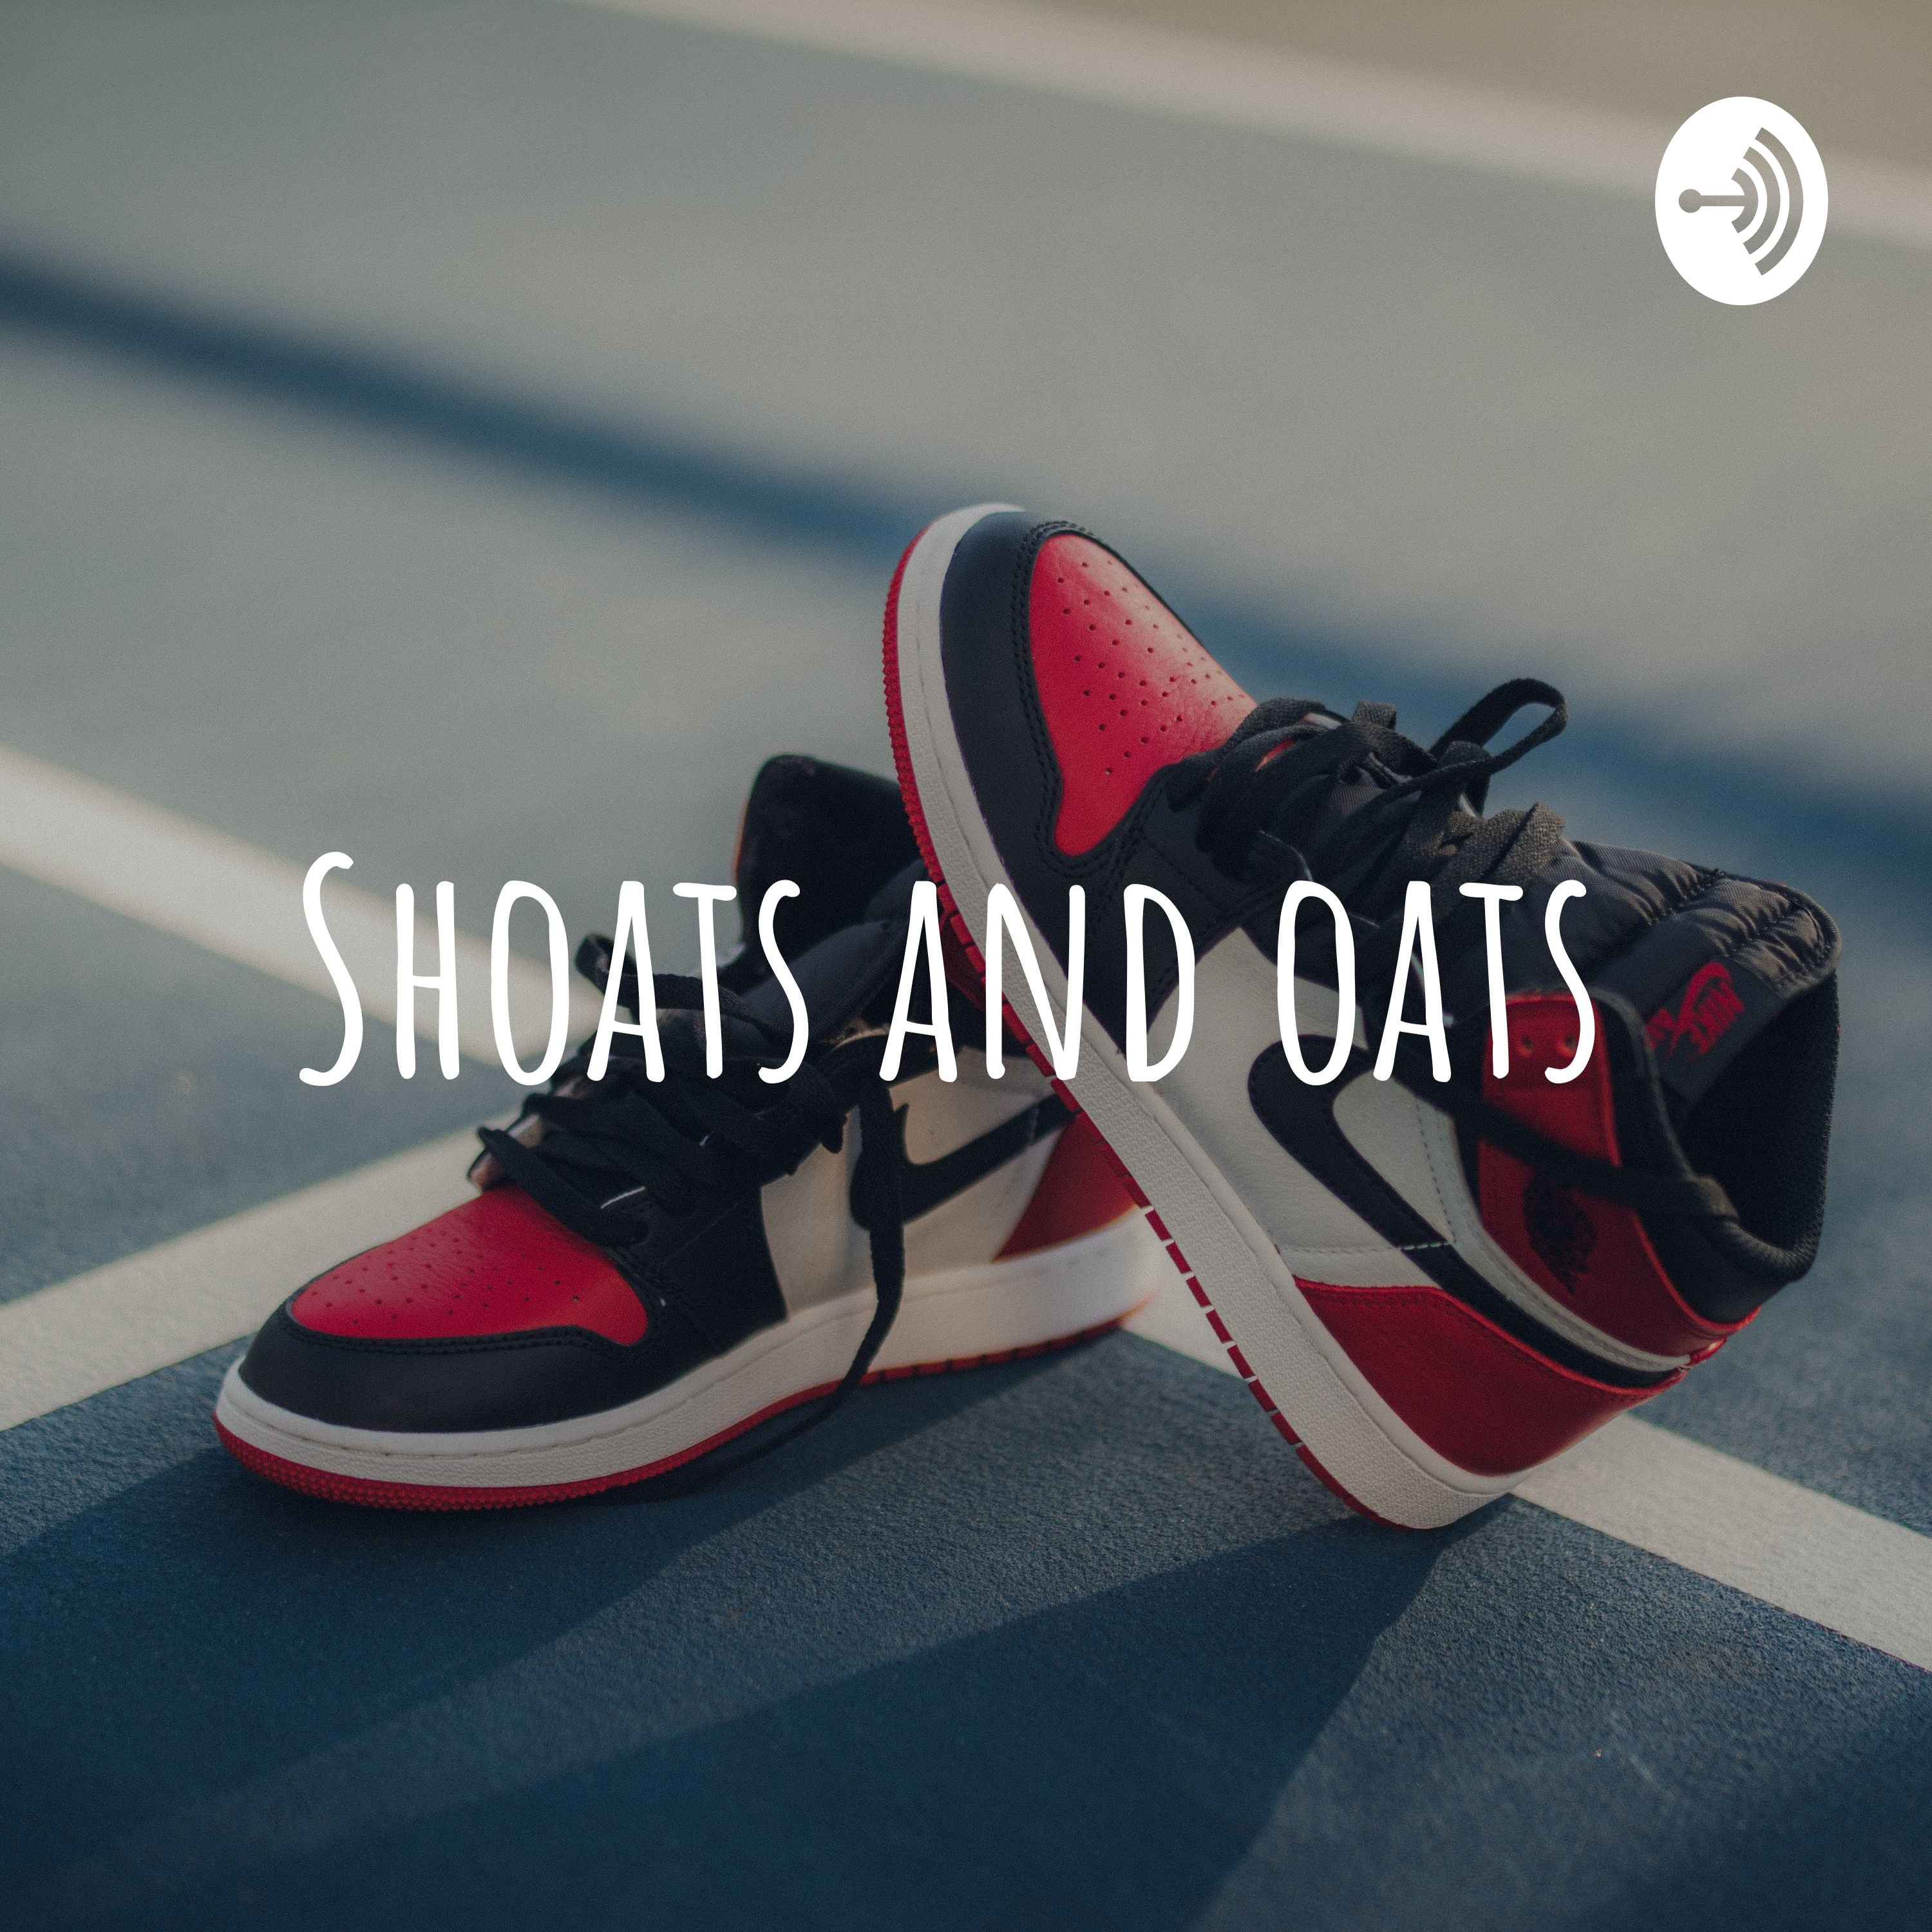 Late night Talk with shoats and Oats